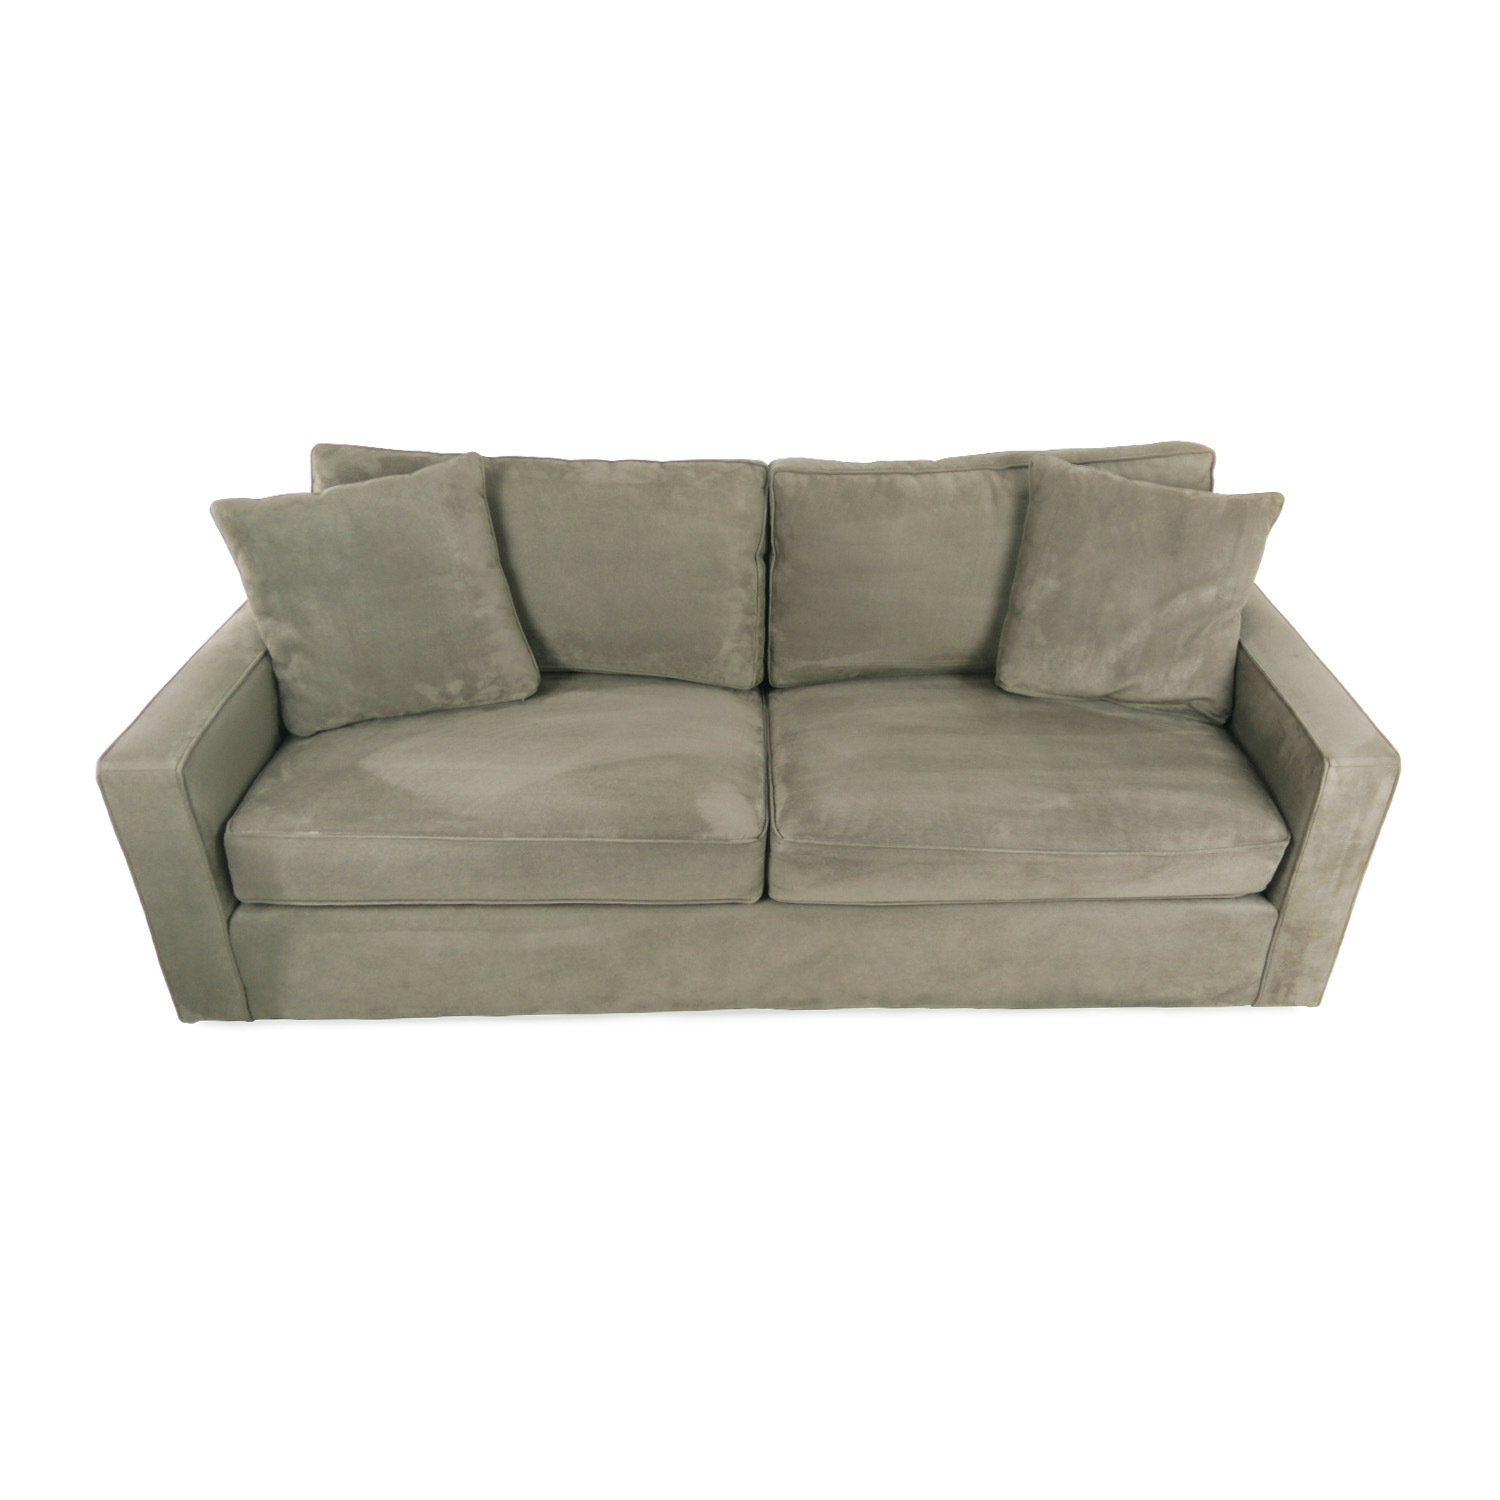 room and board york sofa how to clean the cloth 69 off crate barrel simone daybed